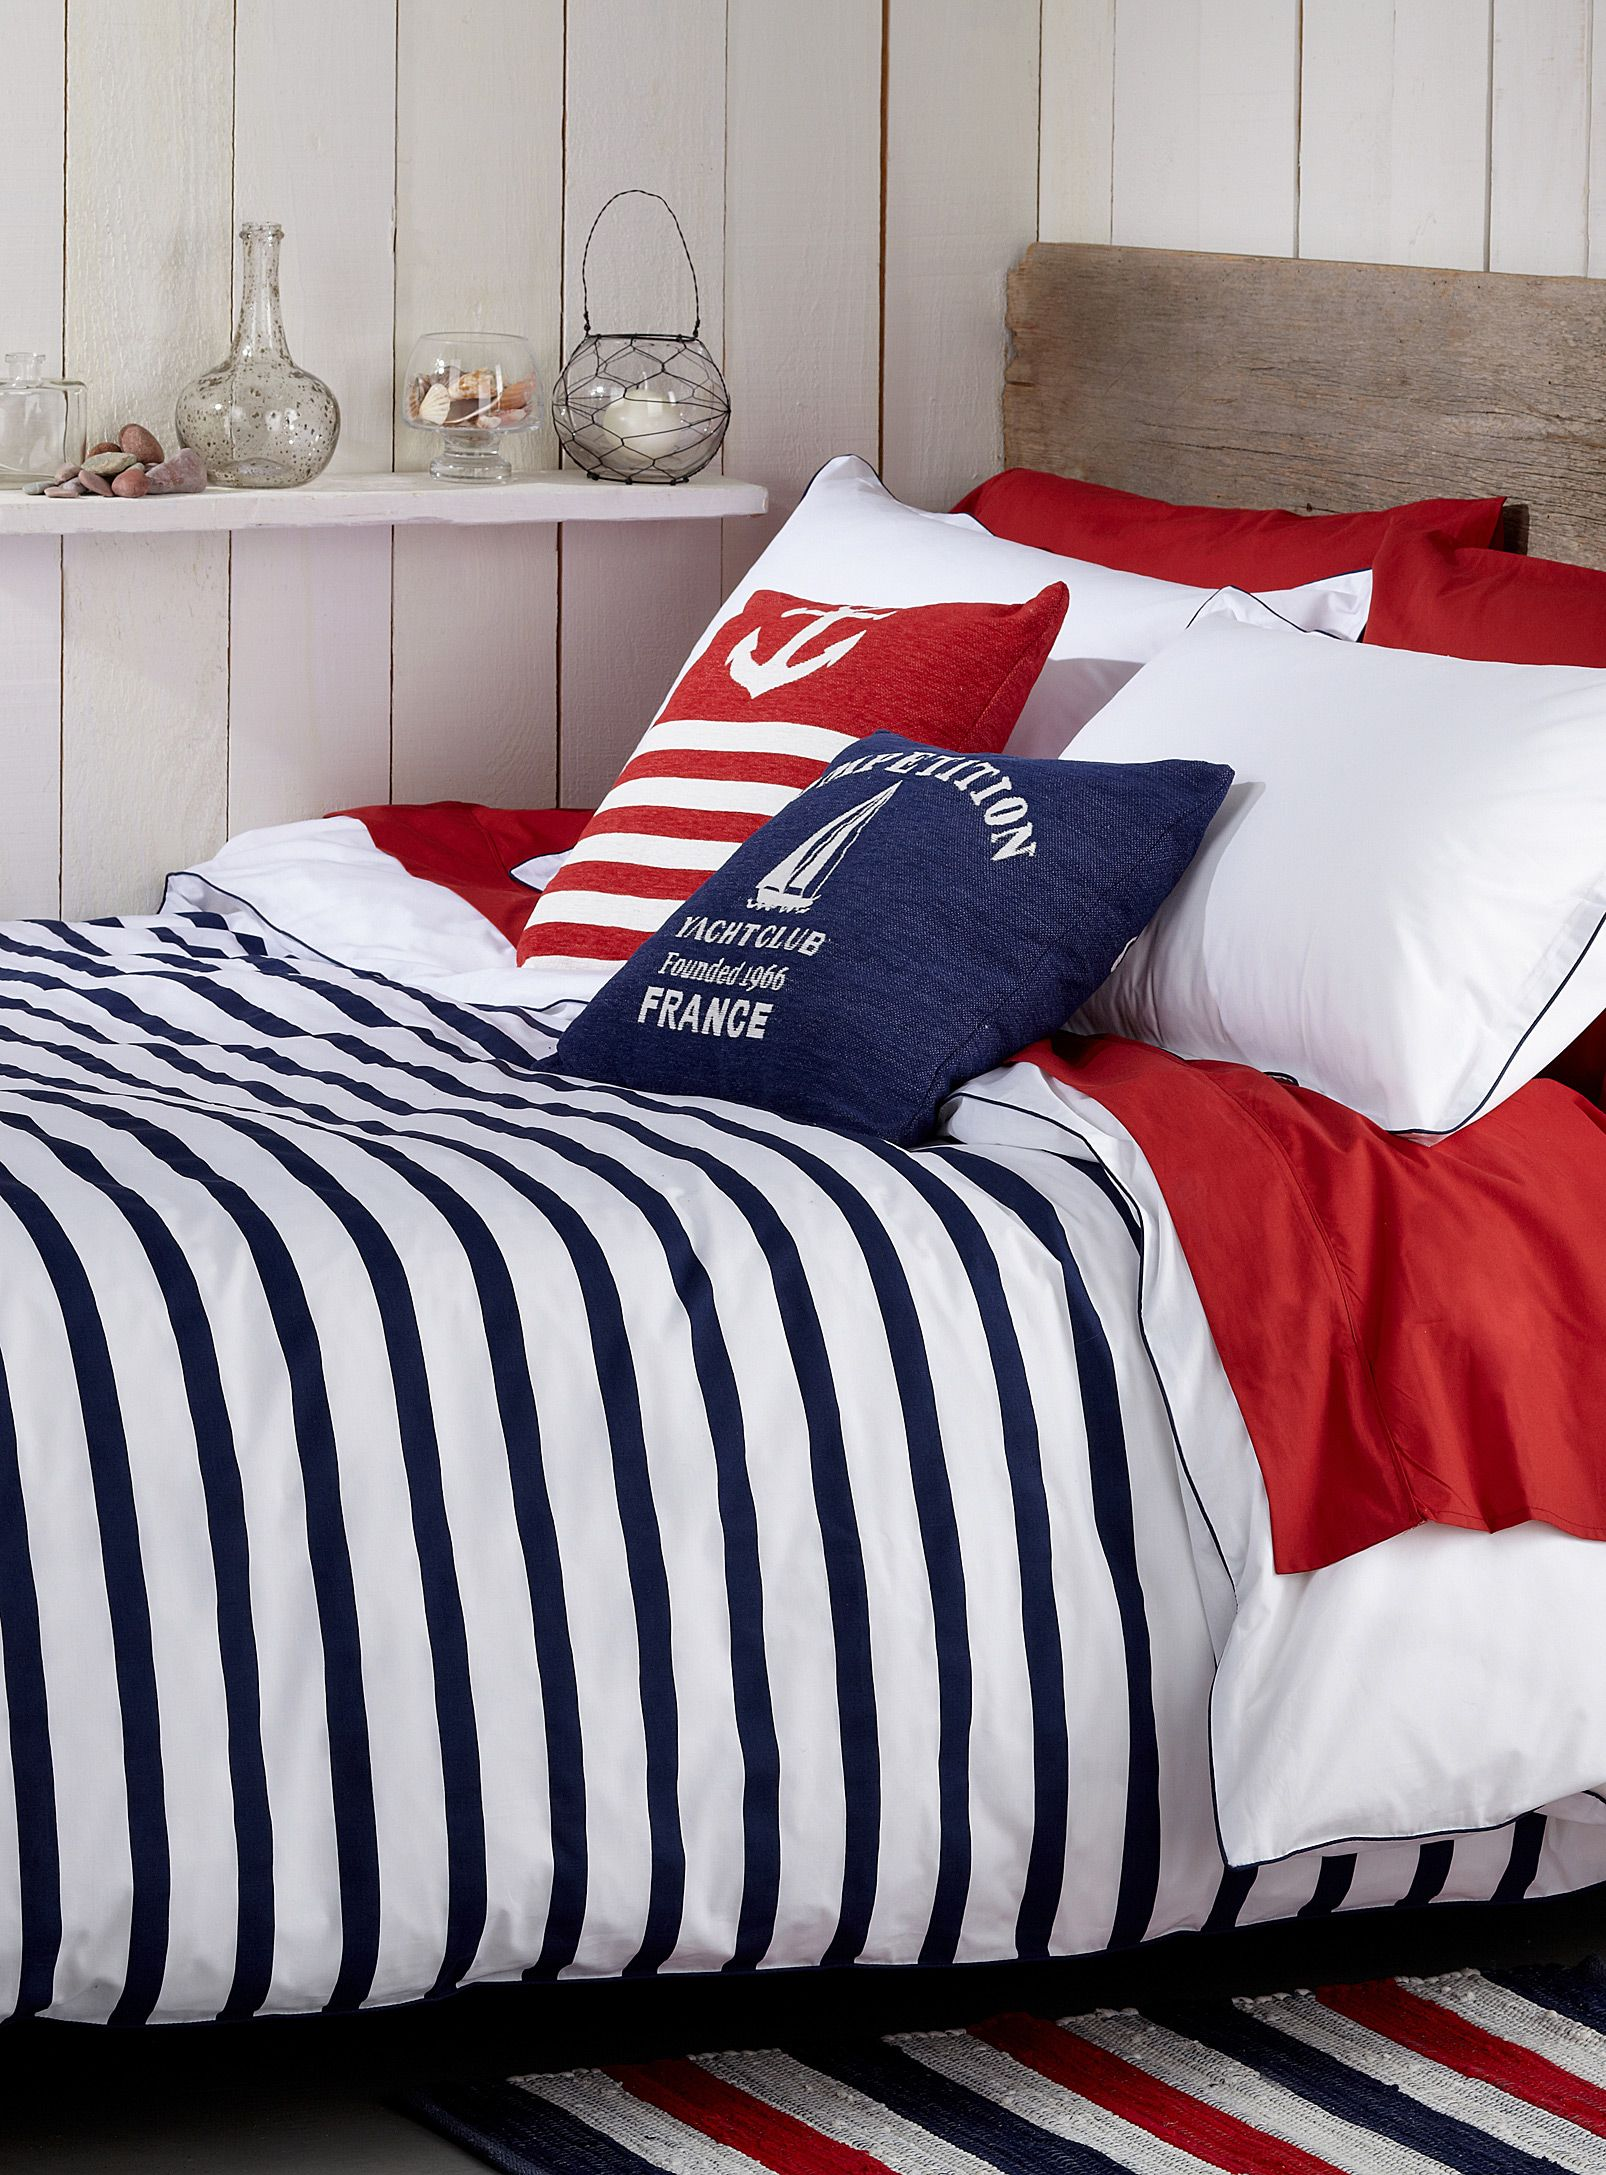 Seeing Stripes Simons Deauville Stripe Duvet Cover Nautical Cusions Http